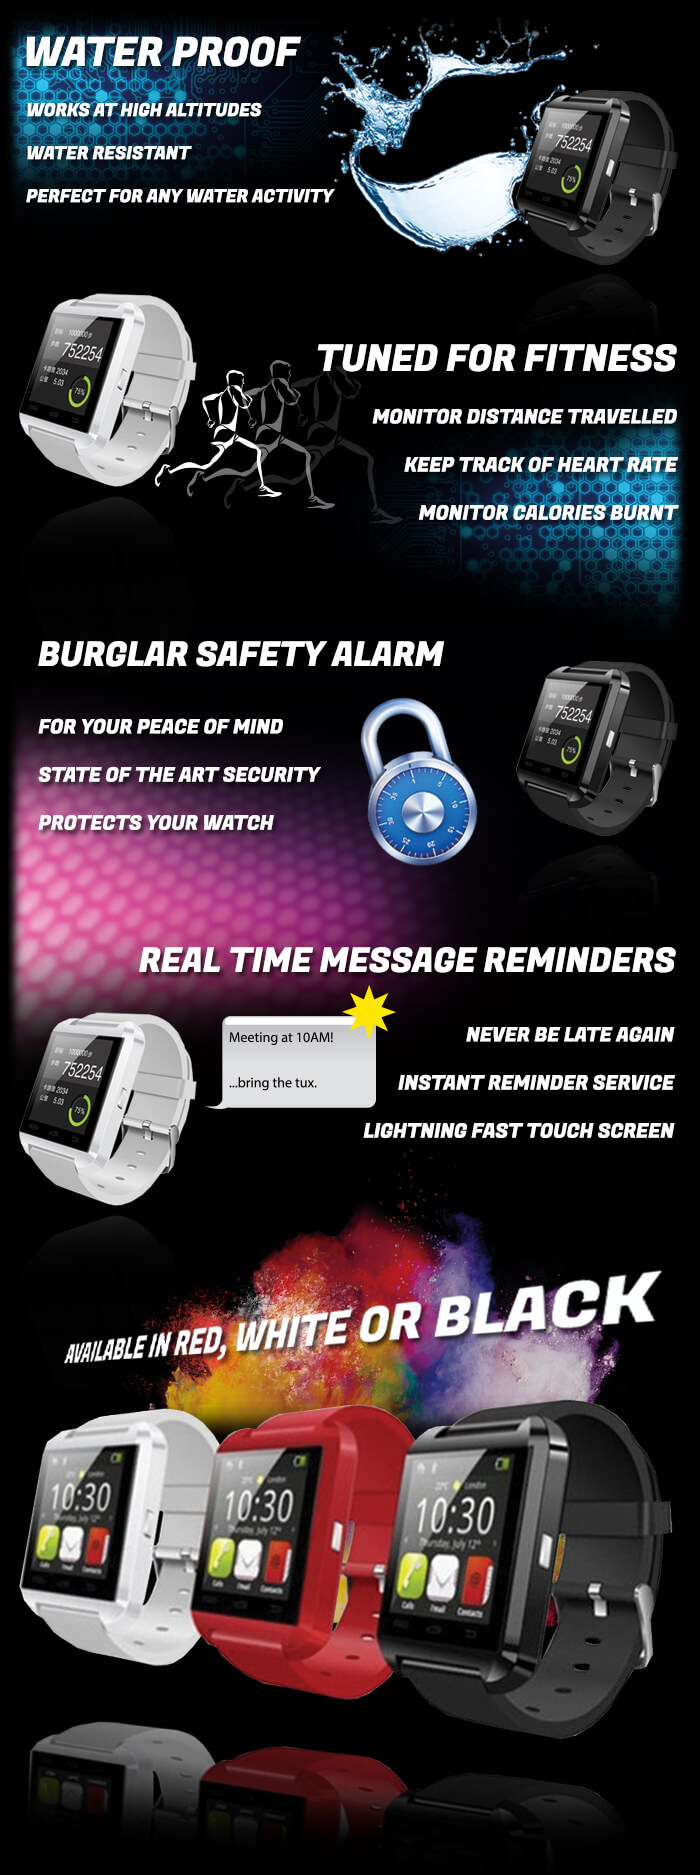 Smart watch promotional